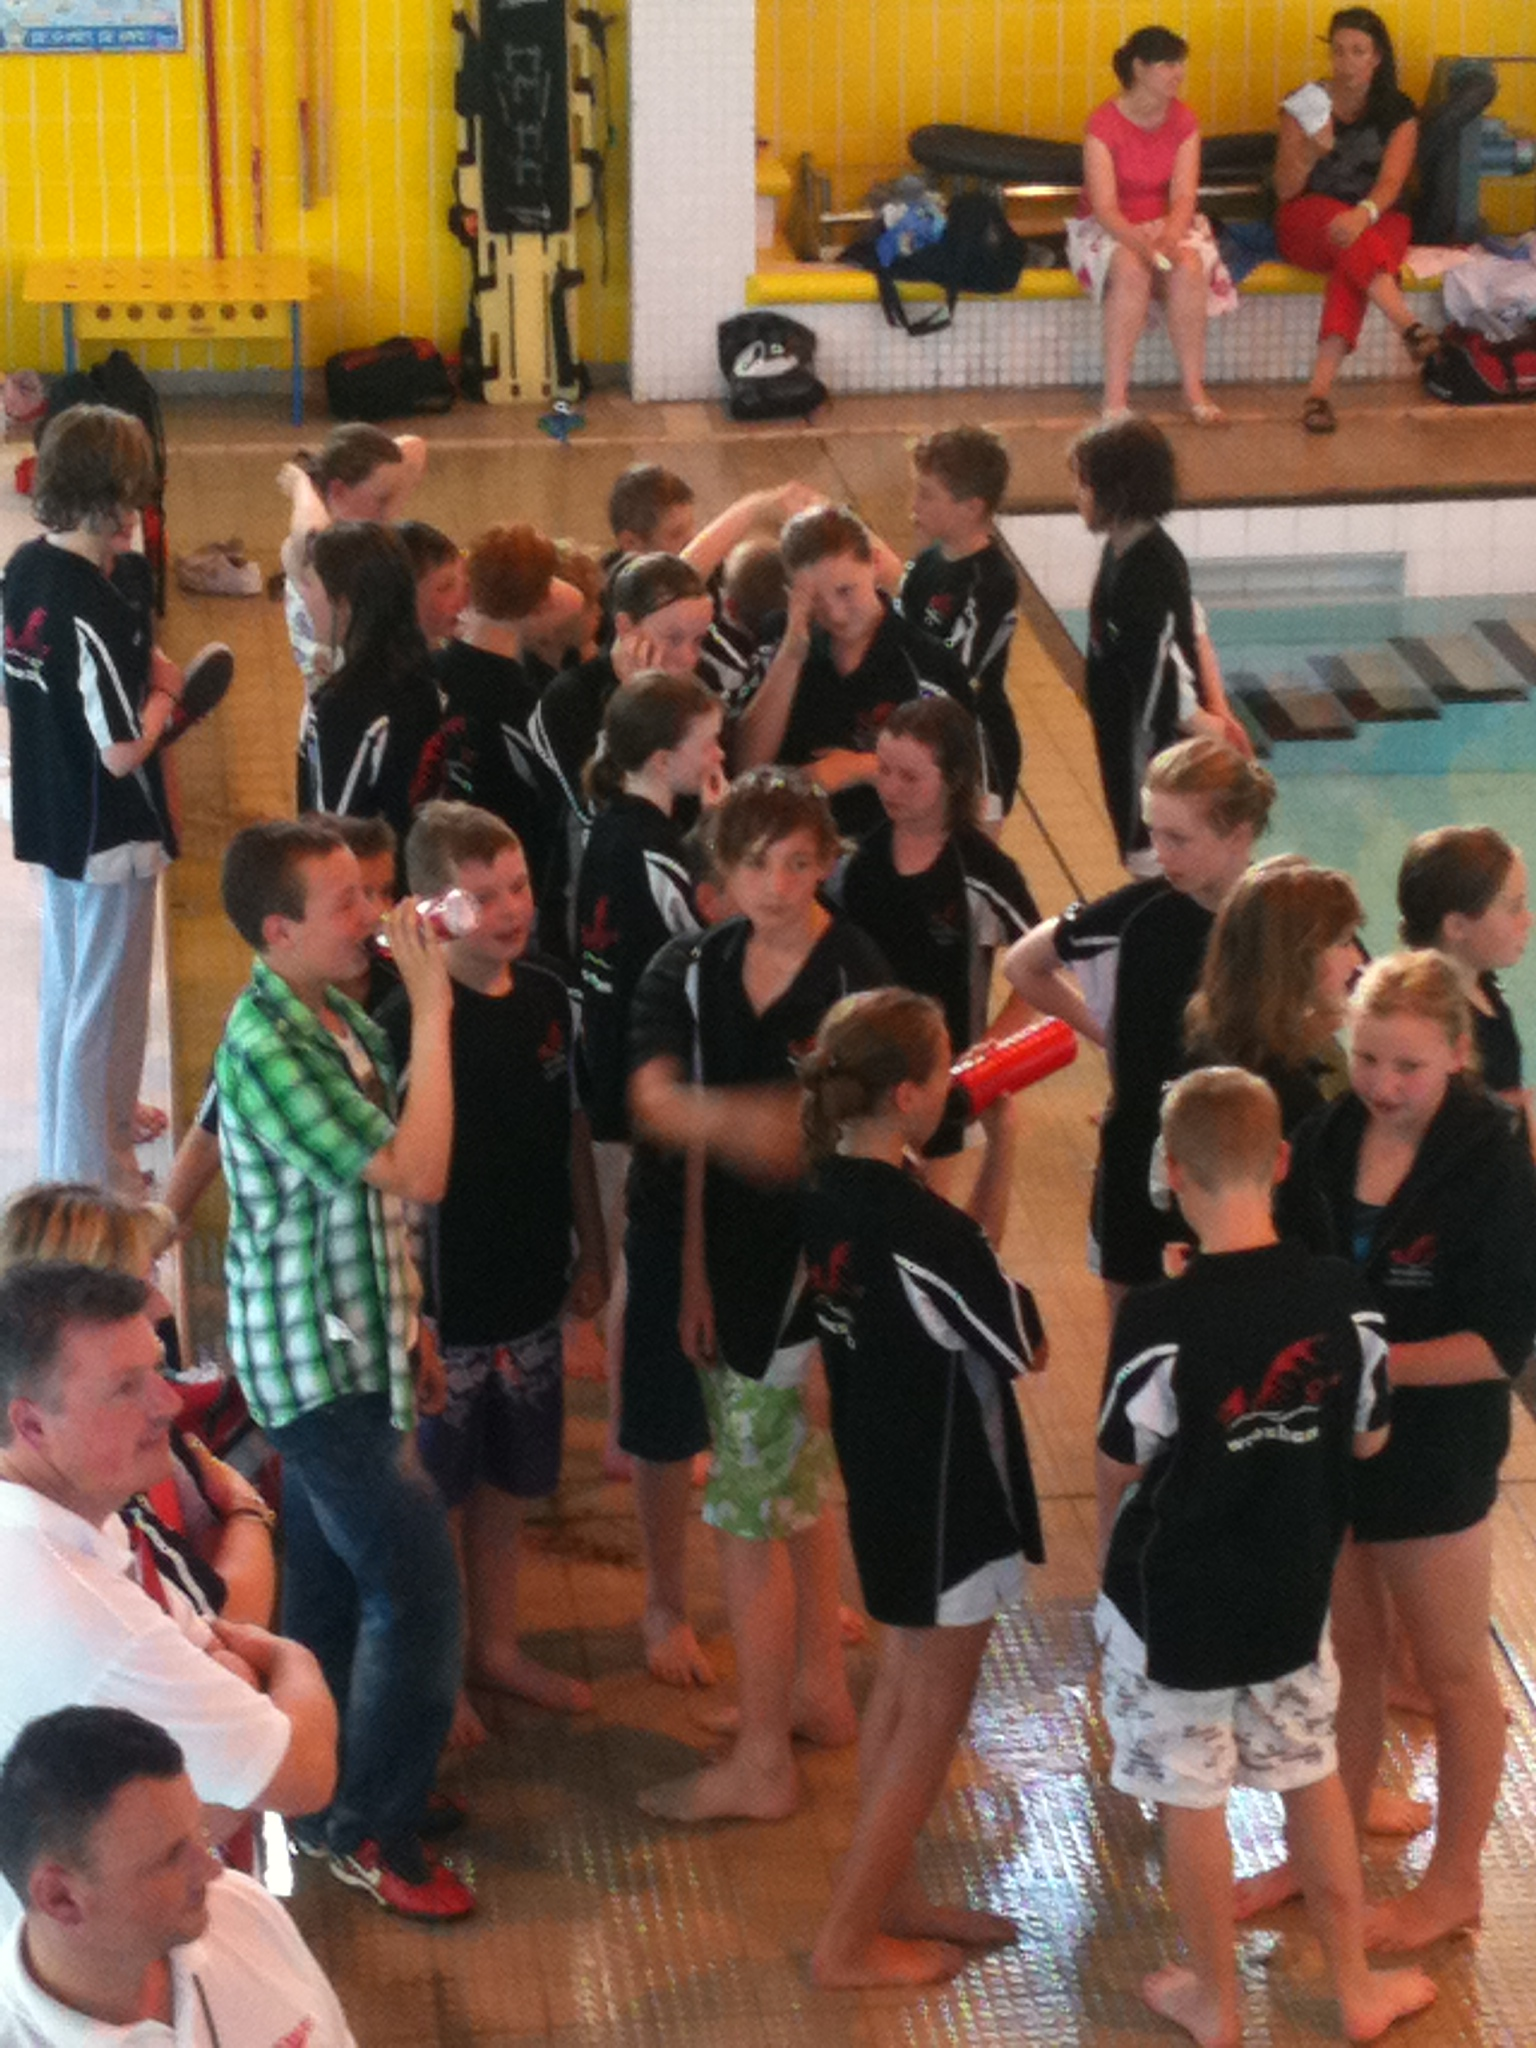 Wrexham Swimming club juniors patiently await the final results to determine the league positions